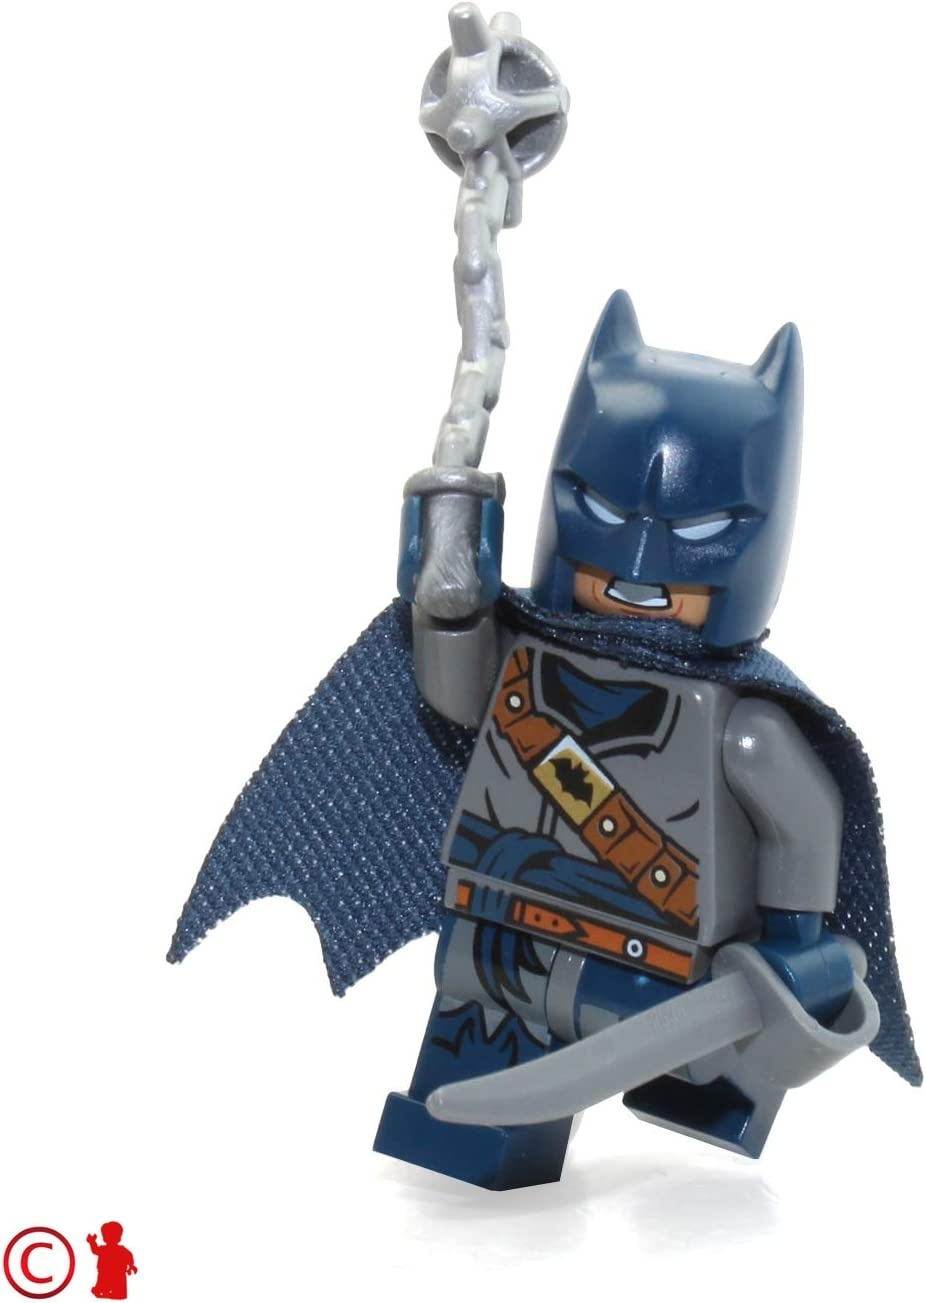 LEGO Super Heroes MiniFigure - Pirate Batman (with Sword and Spiked Flail) Exclusive